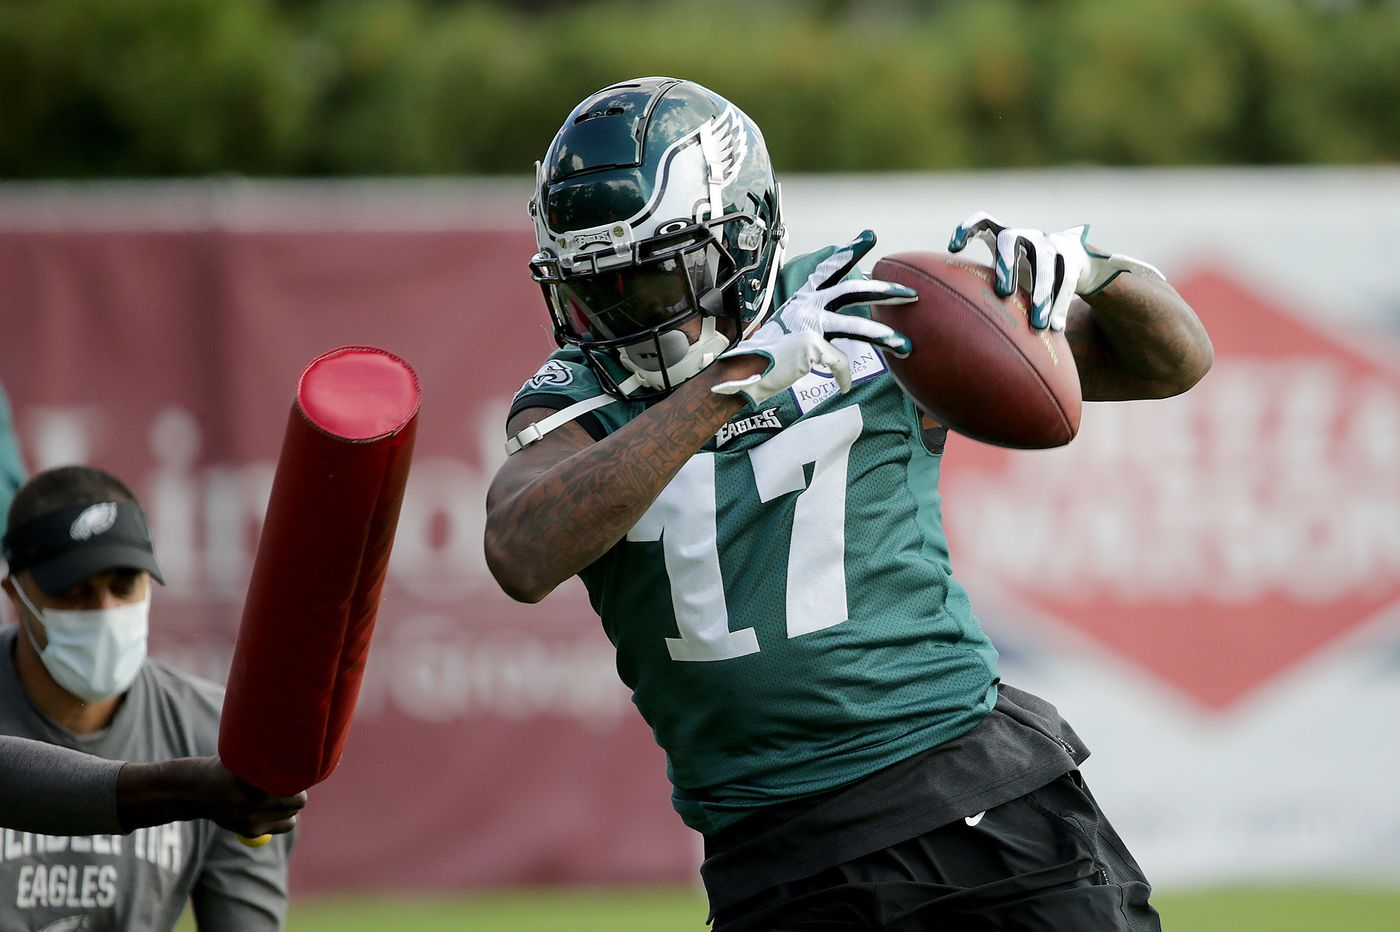 The Eagles were missing a ton of players at Wednesday's practice